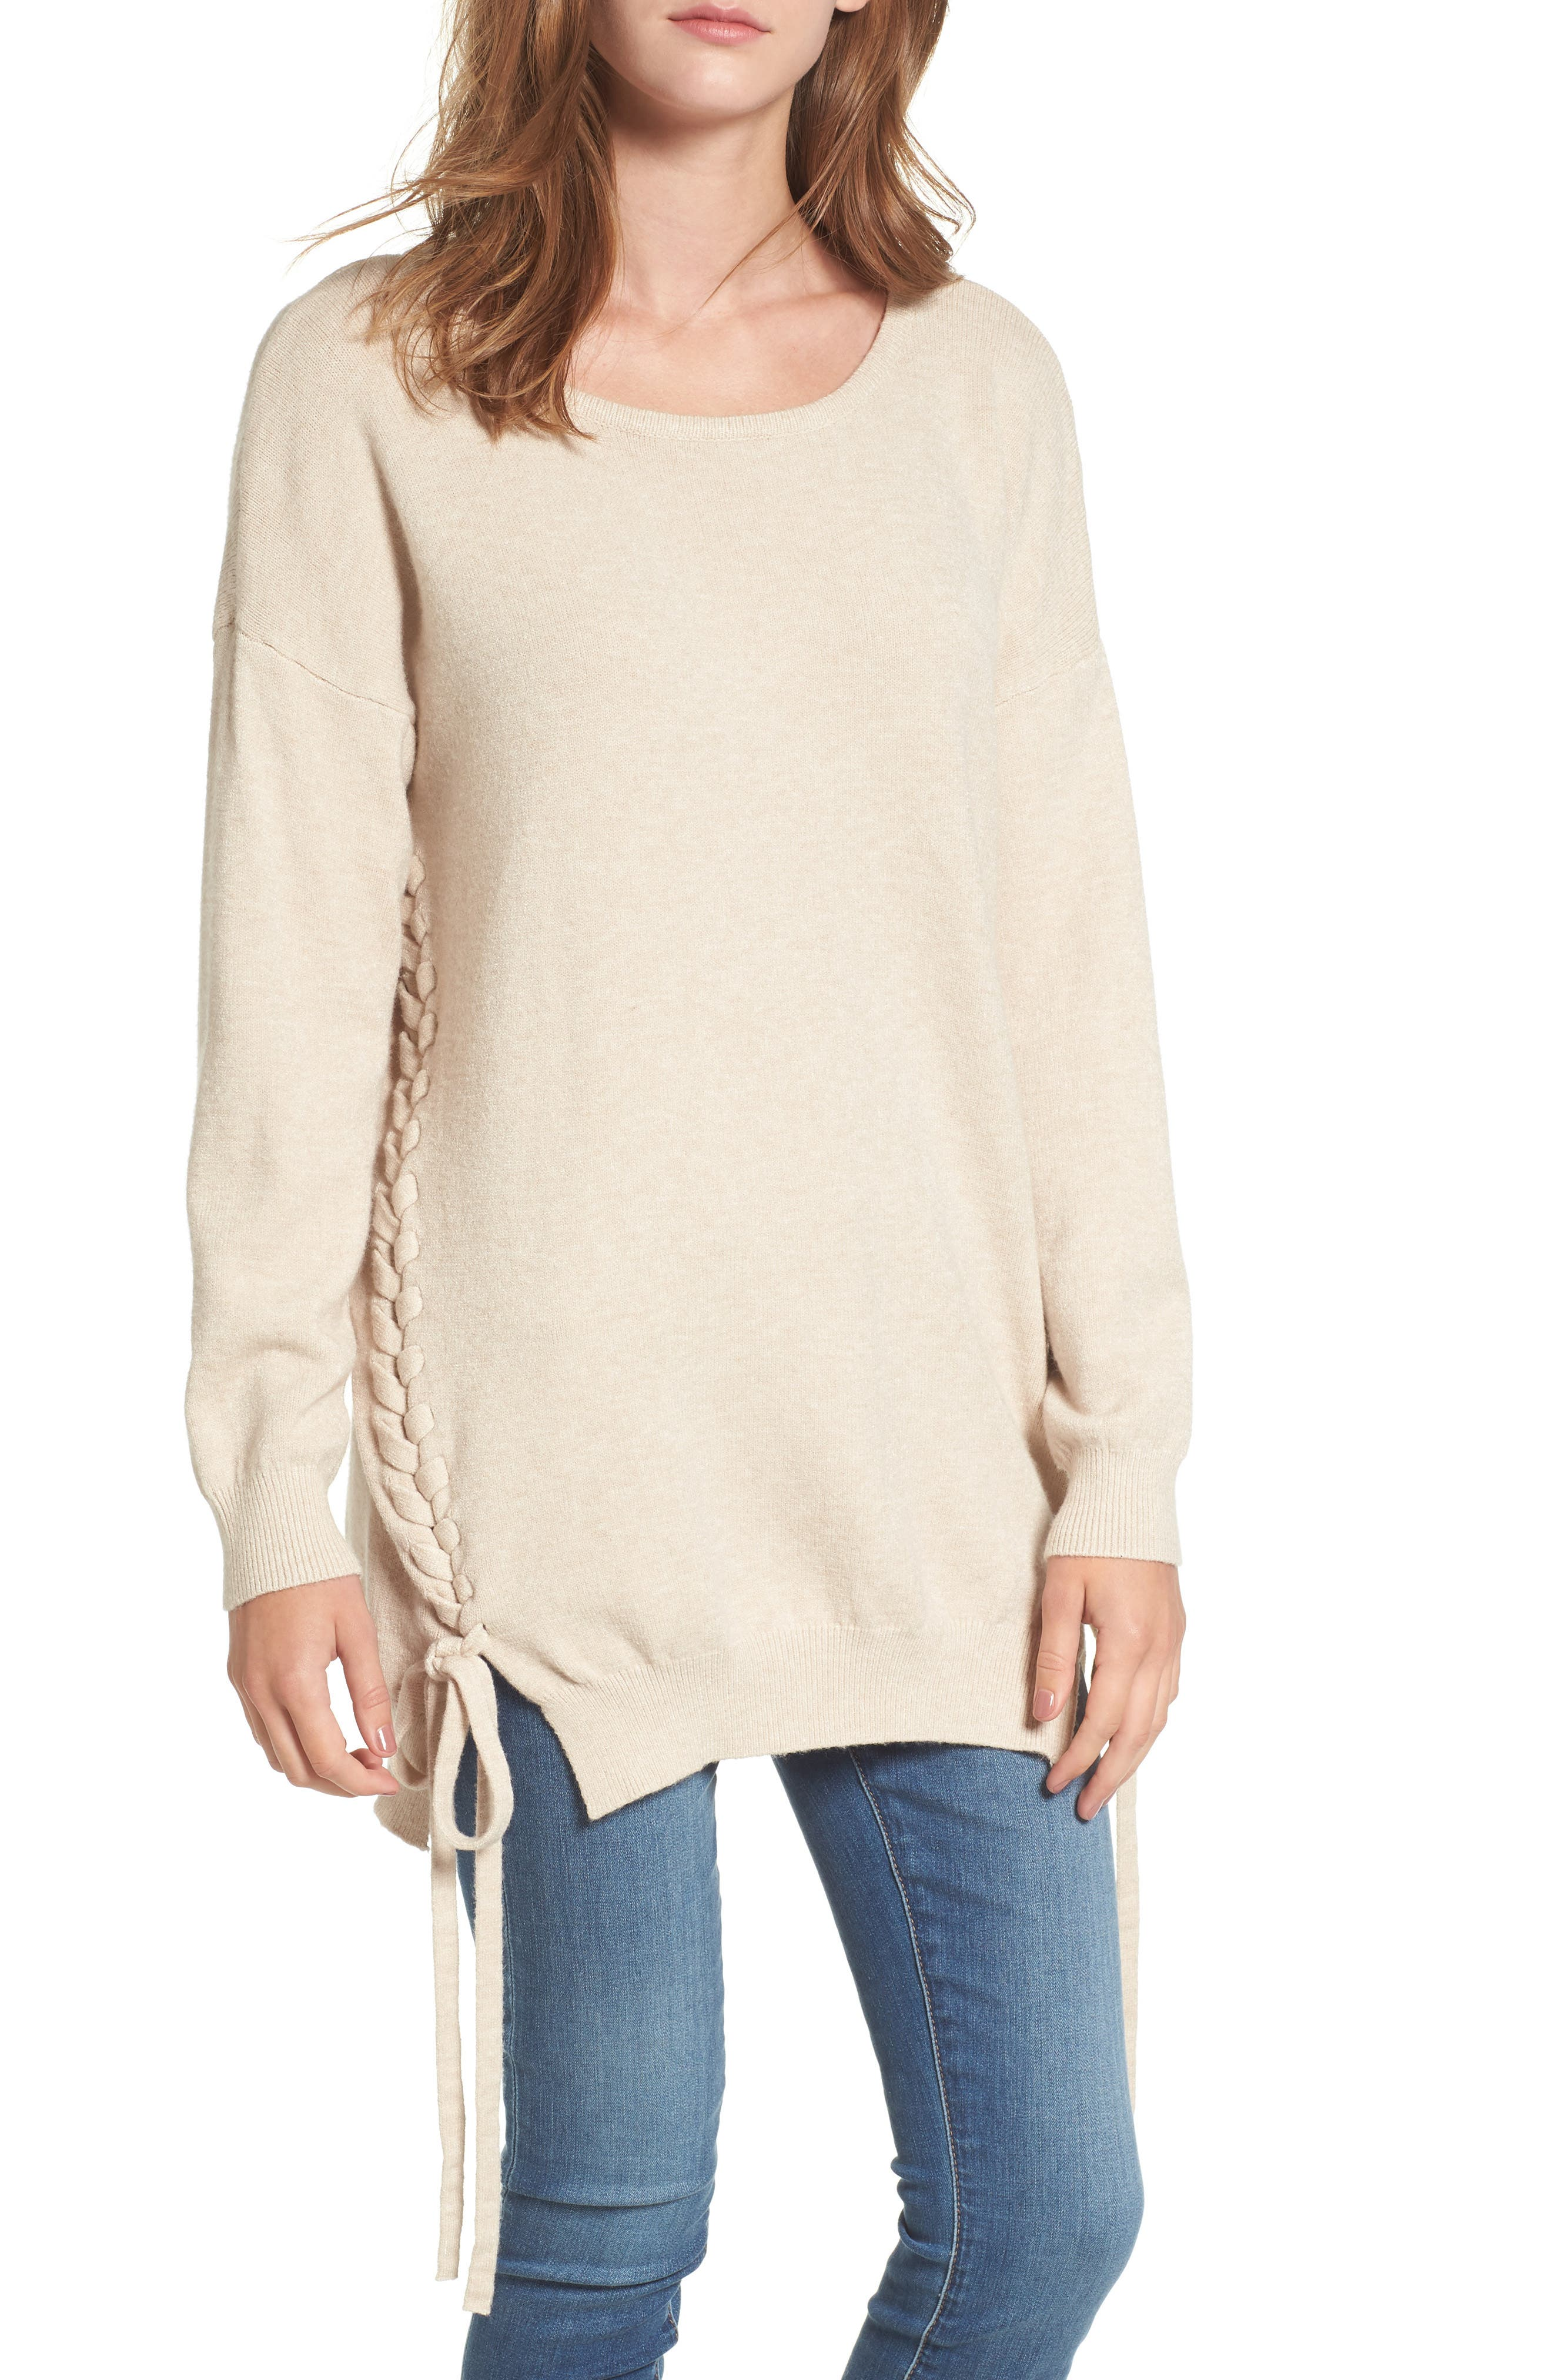 Dreamers by Debut Lace-Up Tunic Sweater